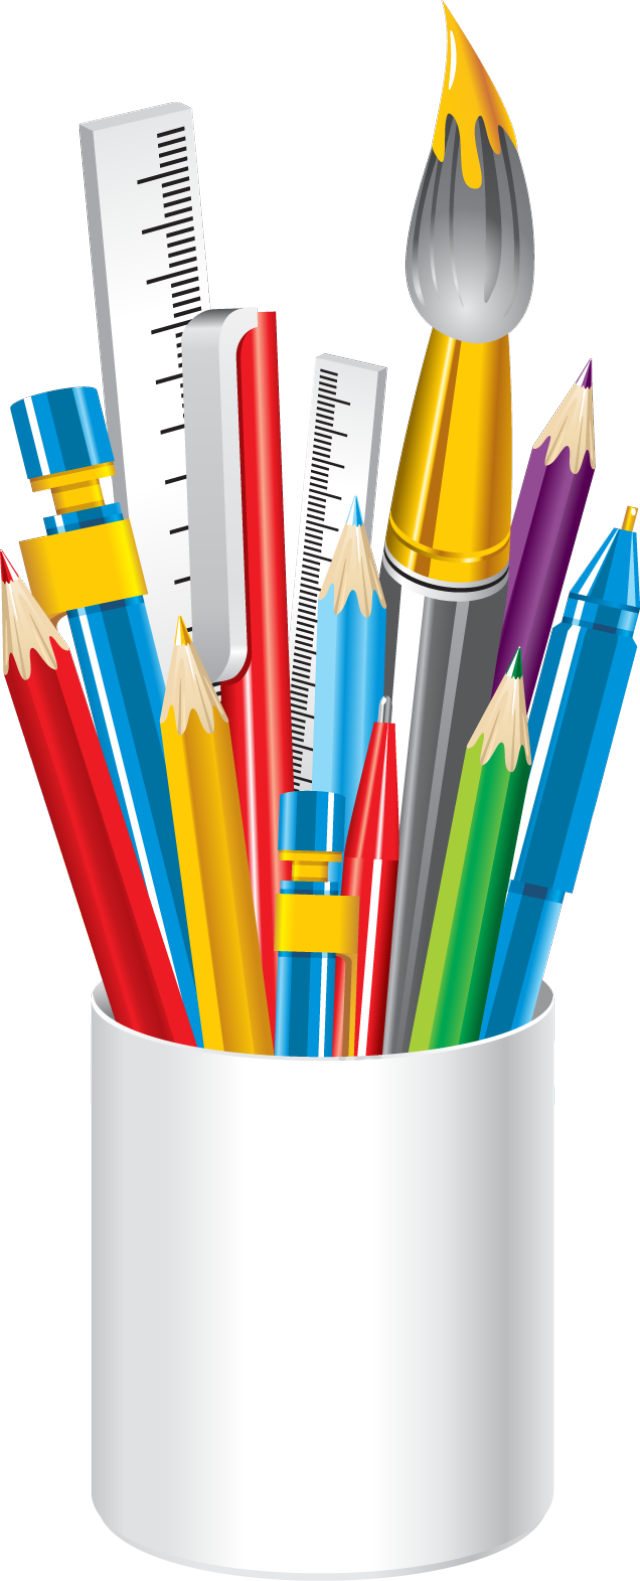 Markers clipart house painting supply. Web design development pinterest